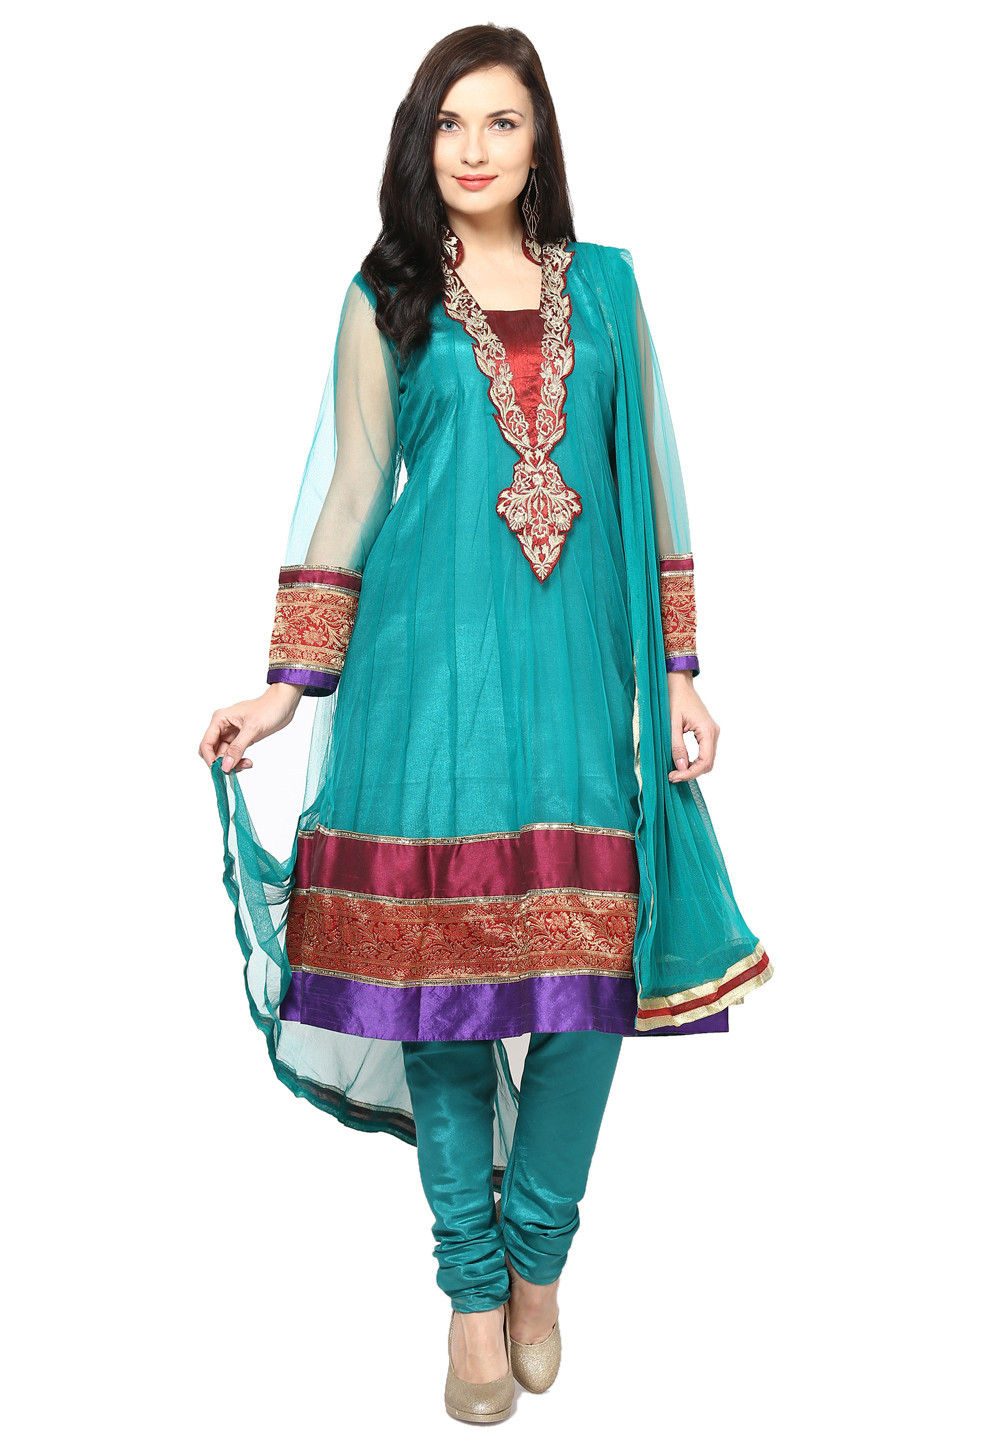 Embroidered Anarkali Suit in Teal Blue